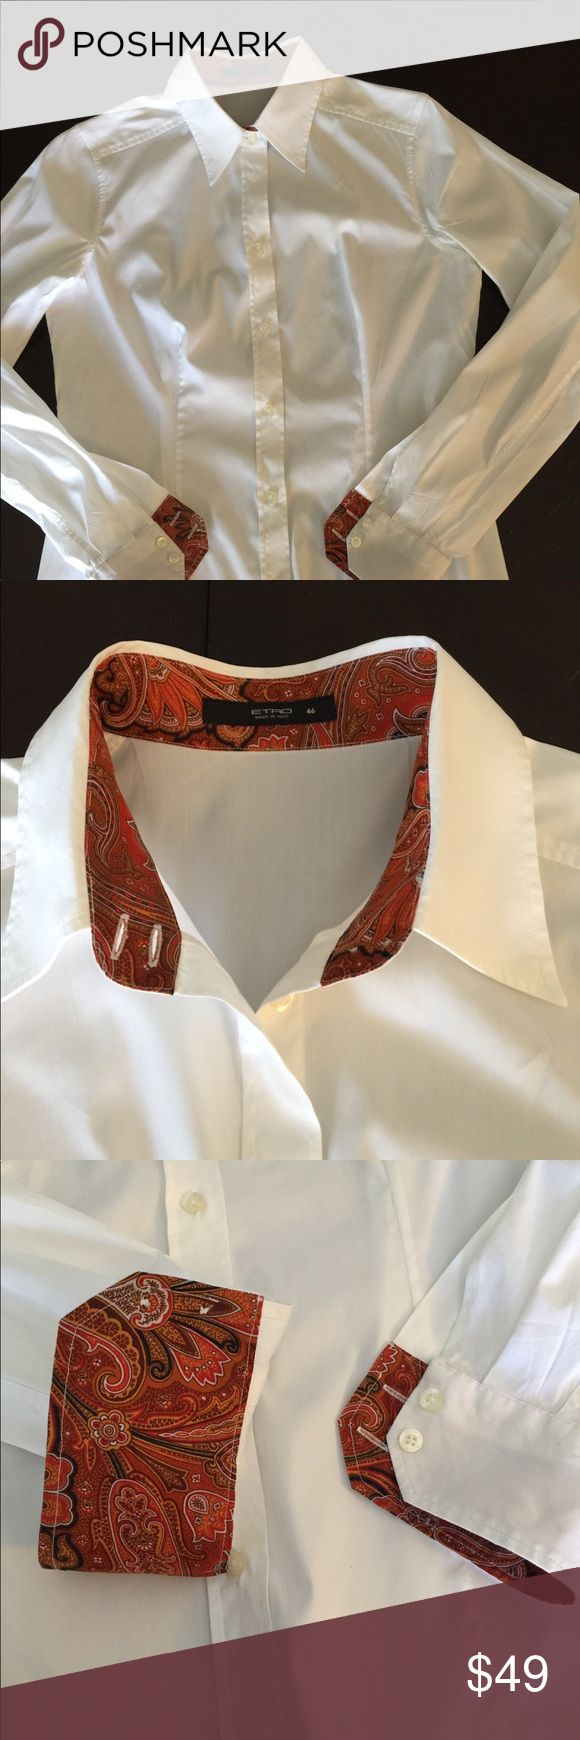 ETRO Italy lady's button down shirts size 46 White special button down shirts size 46 Like brand new  Very good condition Etro Tops Button Down Shirts